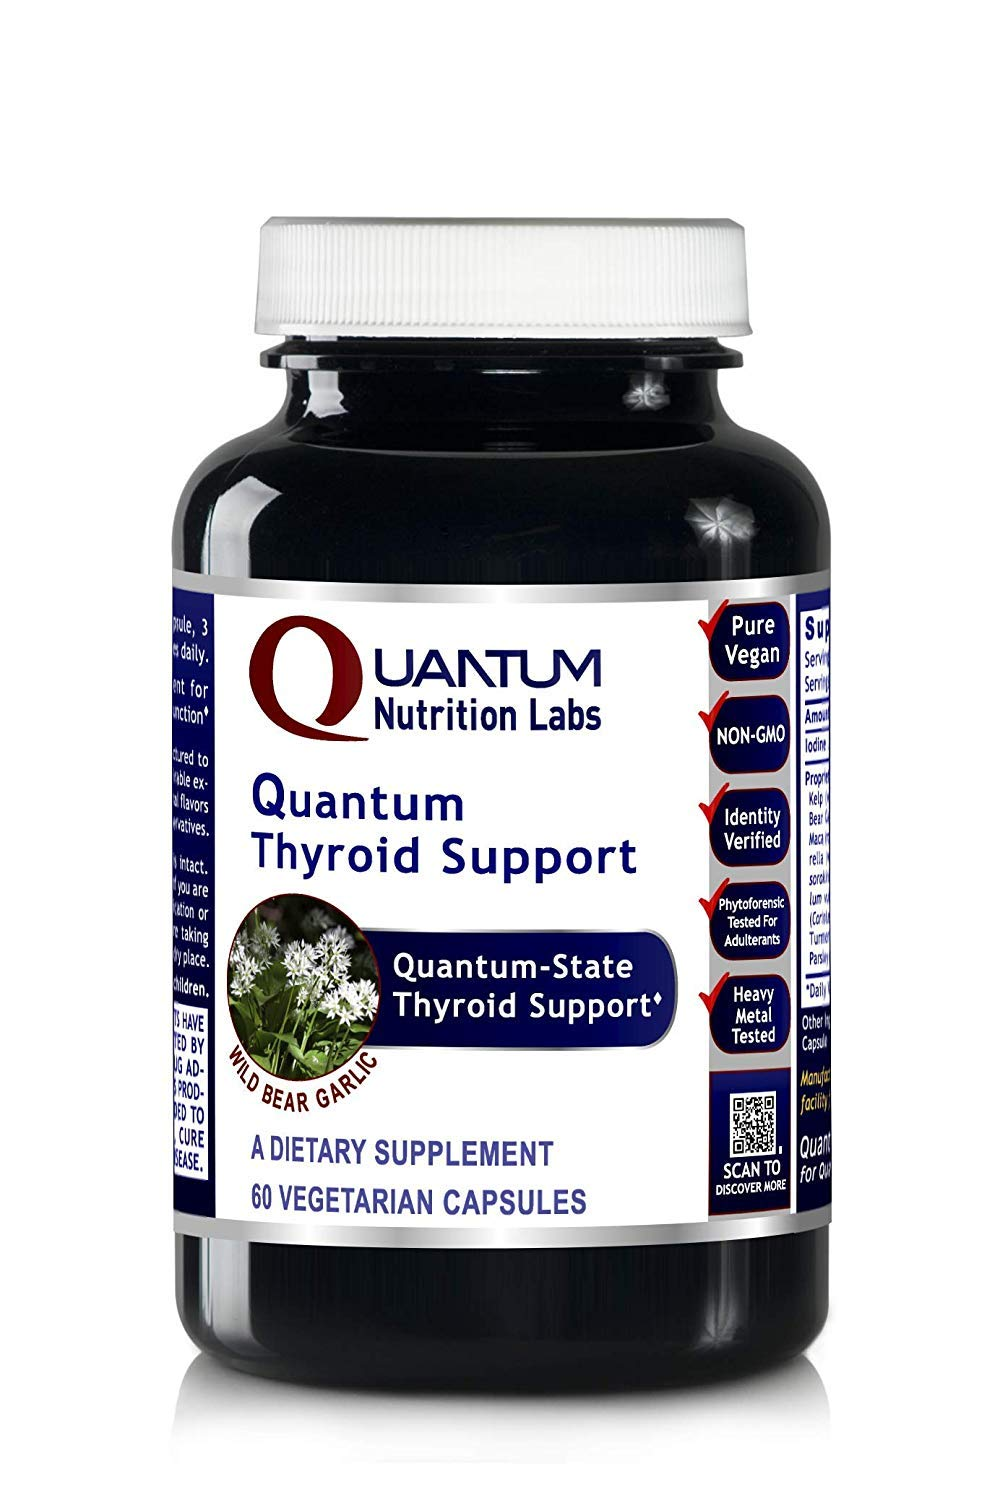 Quantum Thyroid Support, 240 Vegan Caps 4 Bottles - Quantum-State Premier Labs Thyroven Detoxification and Thyroid Support by Quantum Nutrition Labs